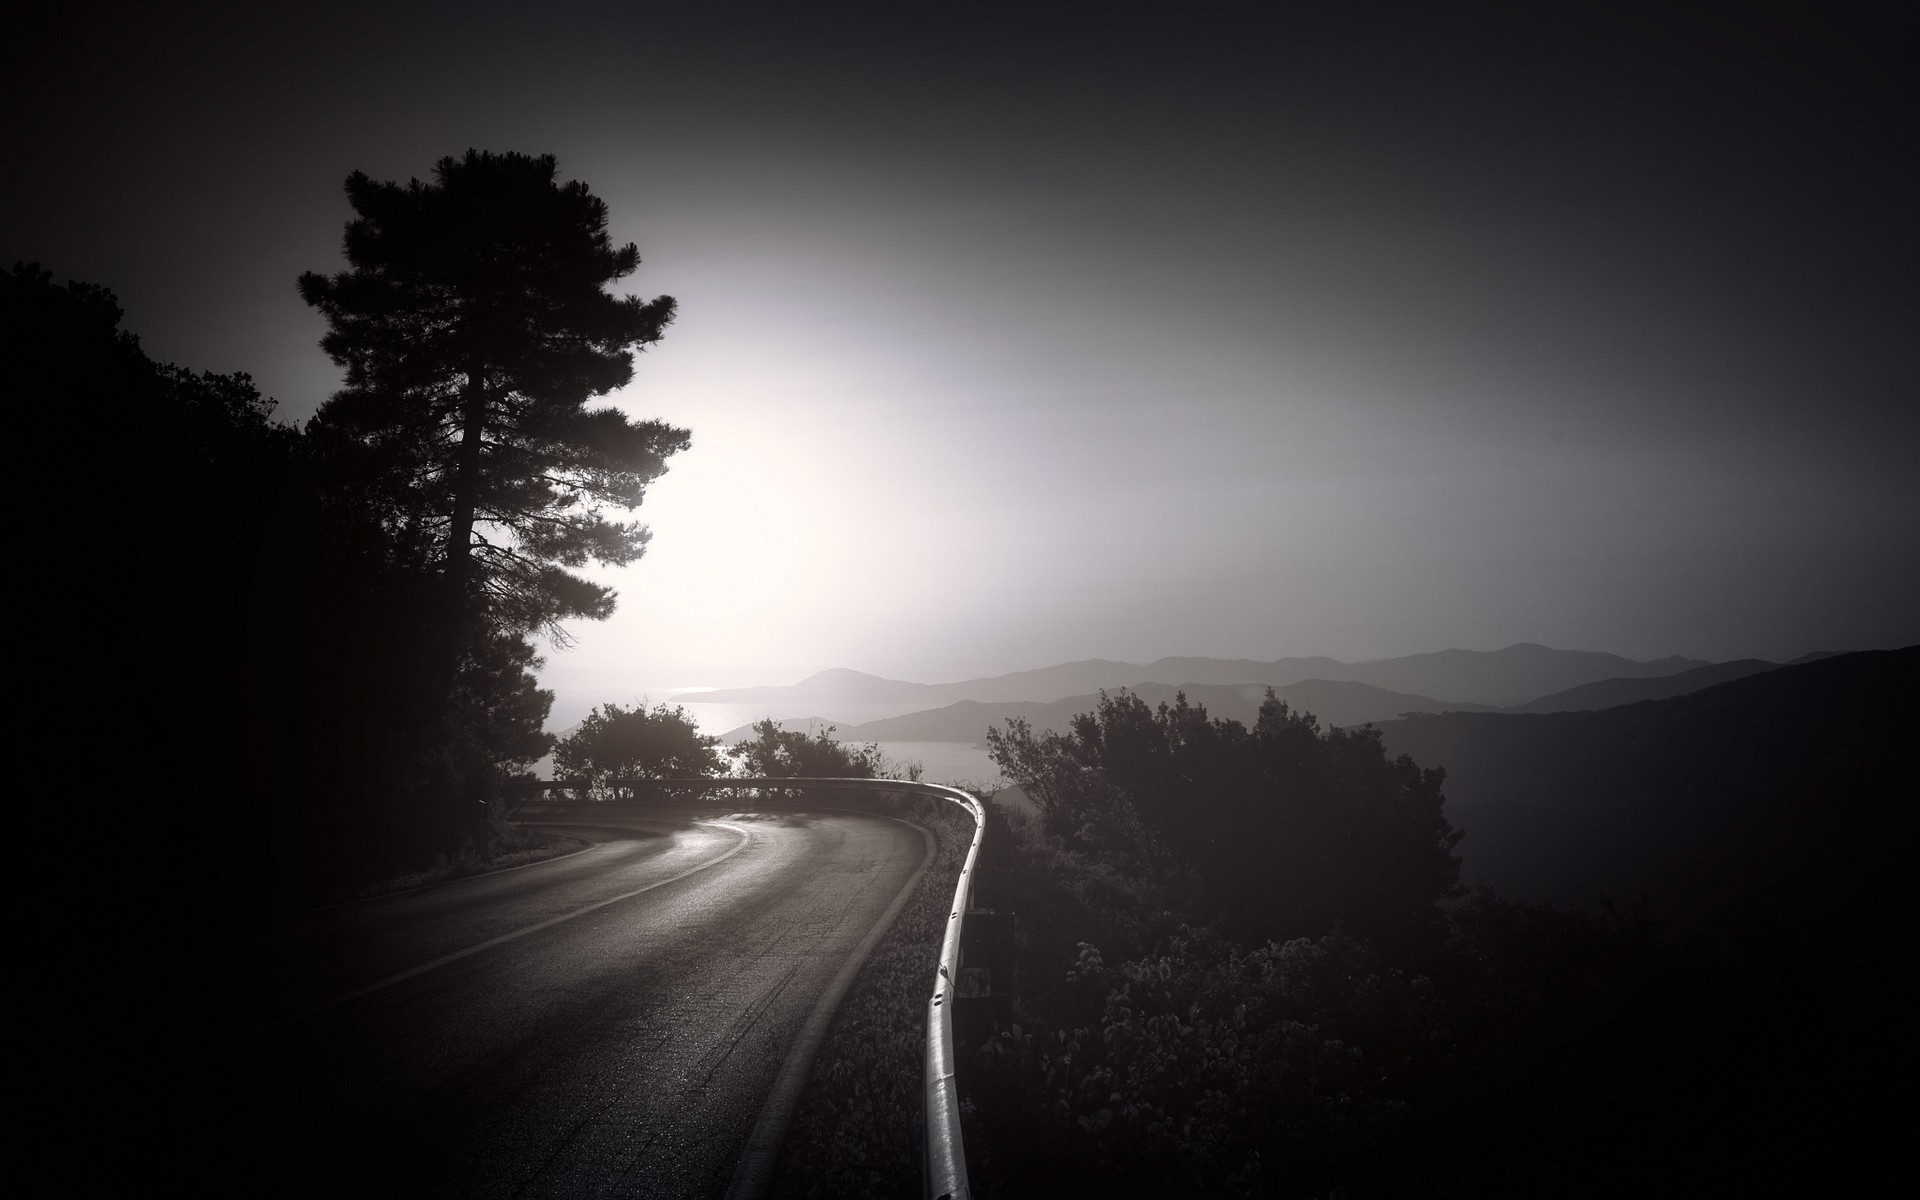 Dark road hd nature 4k wallpapers images backgrounds photos and pictures - Hd wallpapers of darkness ...